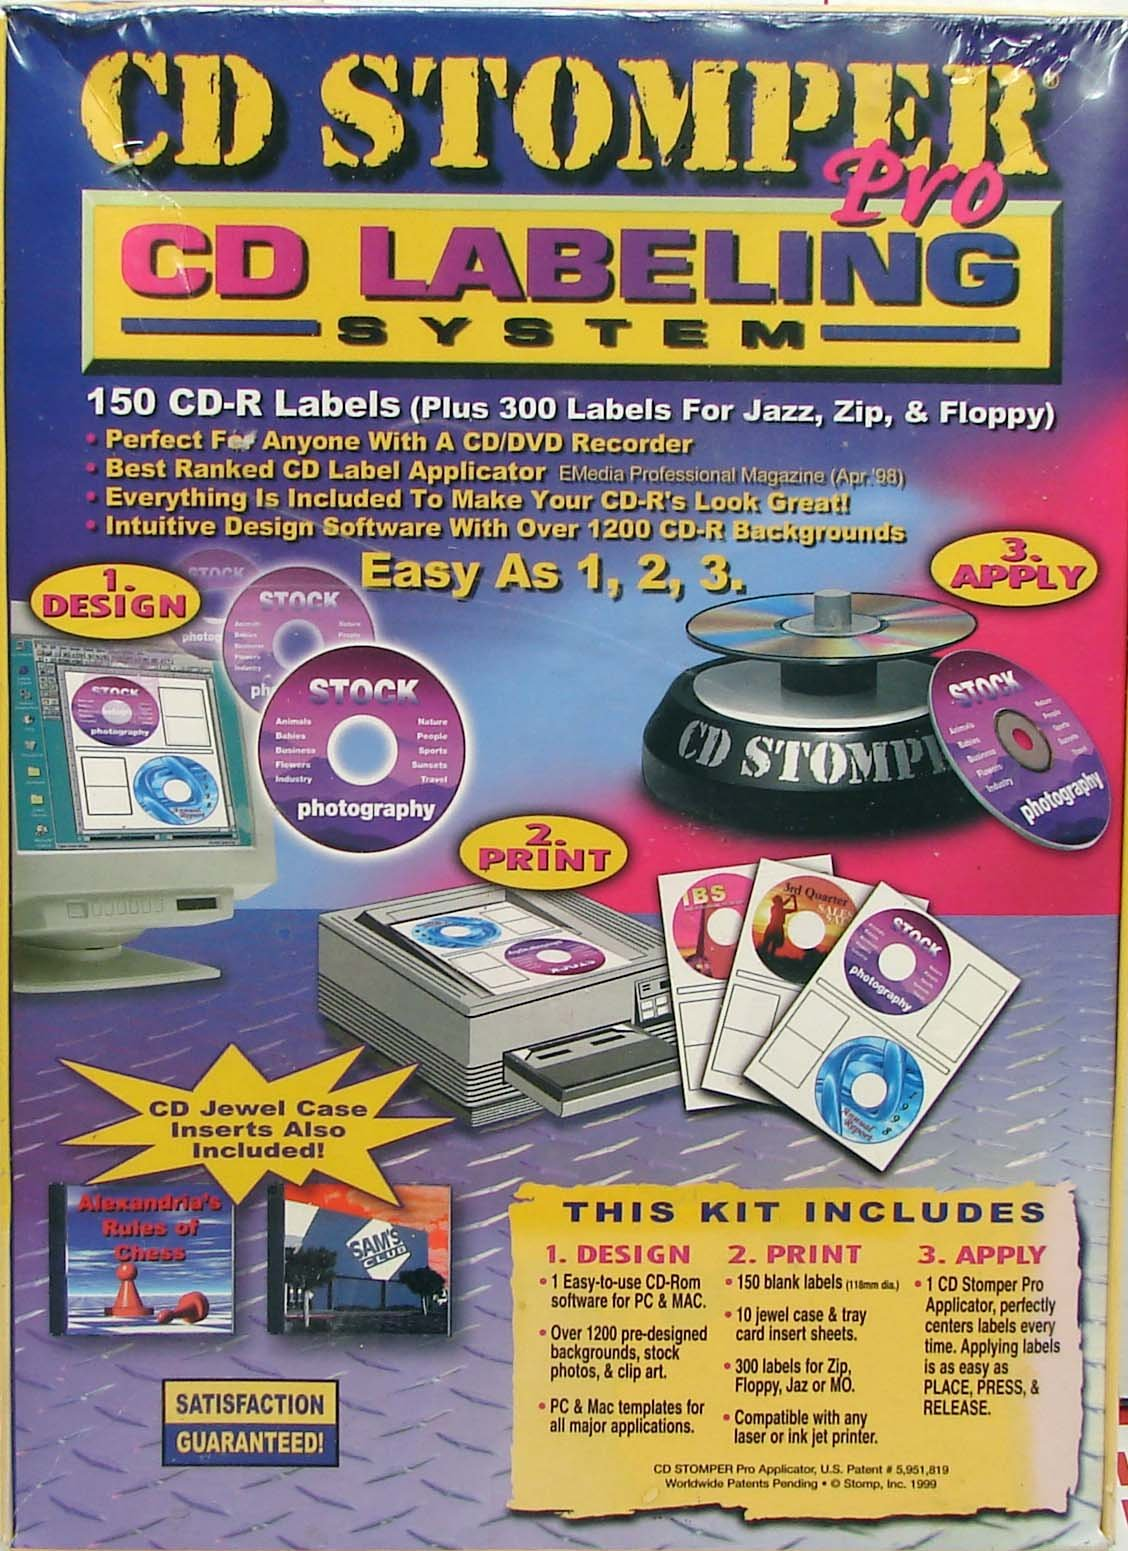 CD Stomper Pro CD Labeling System by Stomp, Inc.